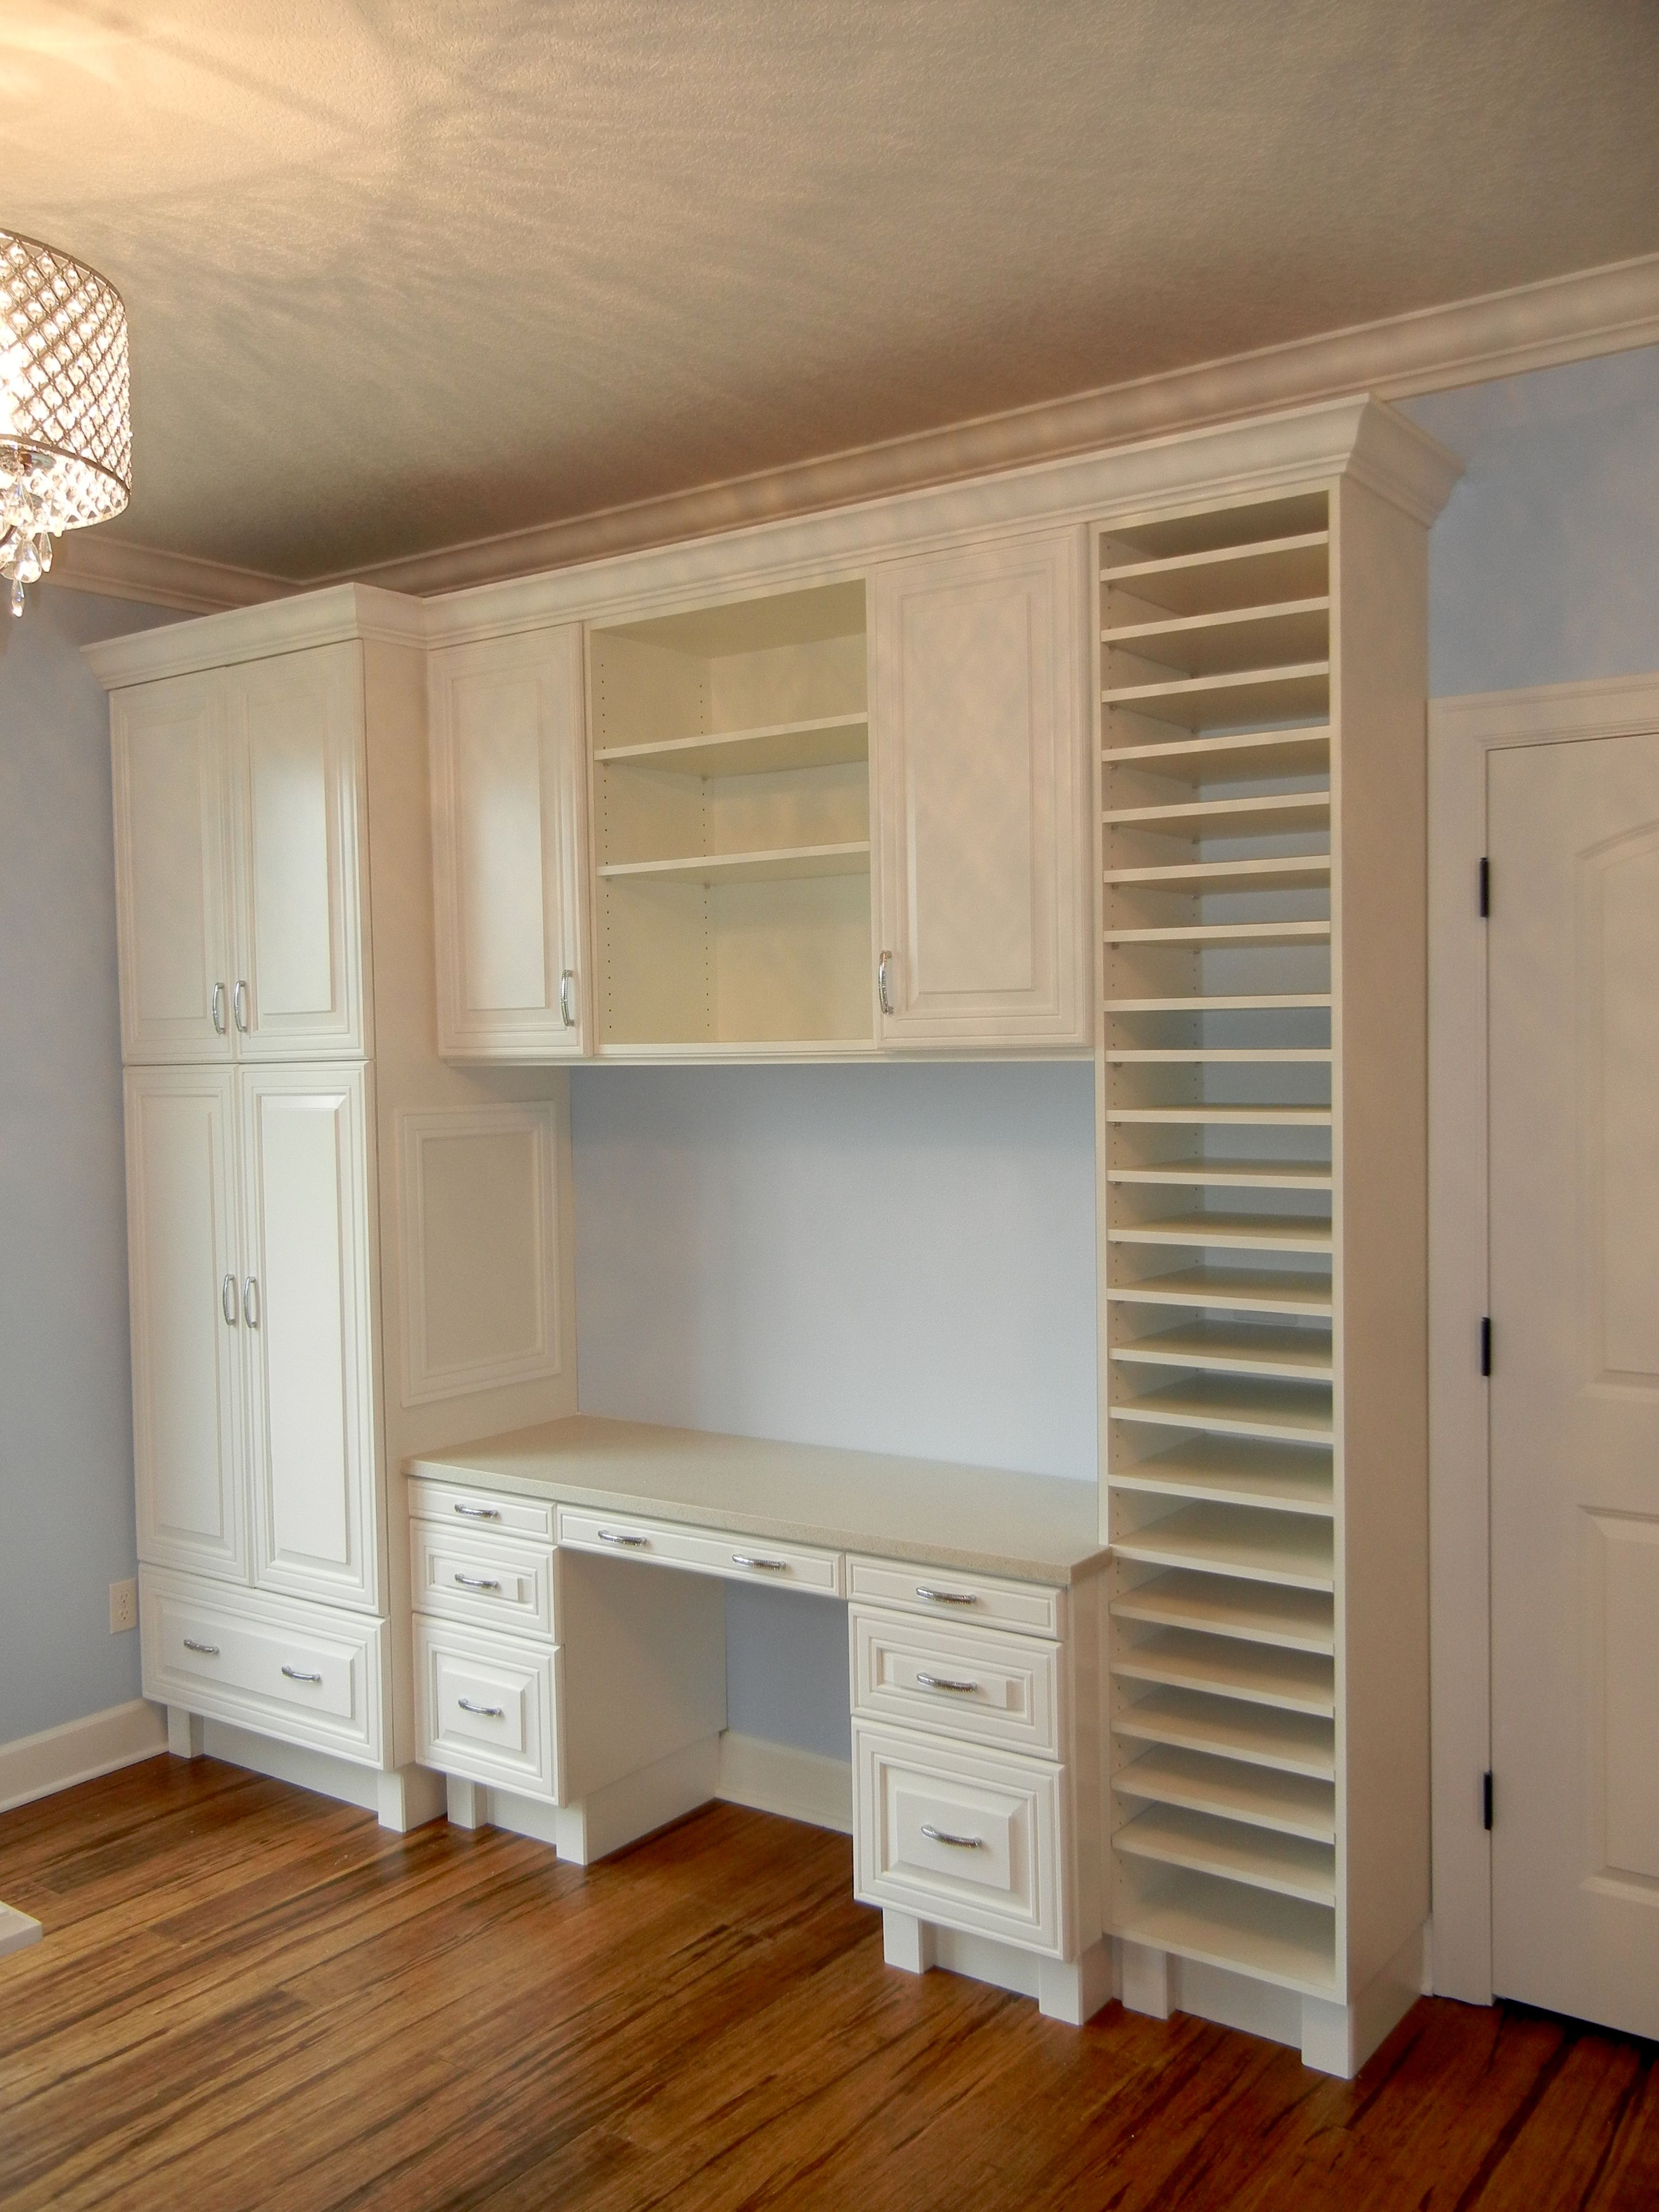 Now This Craft Room Is What I Dream About Built In Shelves And Cabinets With Paper Storage Thi Small Craft Rooms Dream Craft Room Creative Shelving Ideas